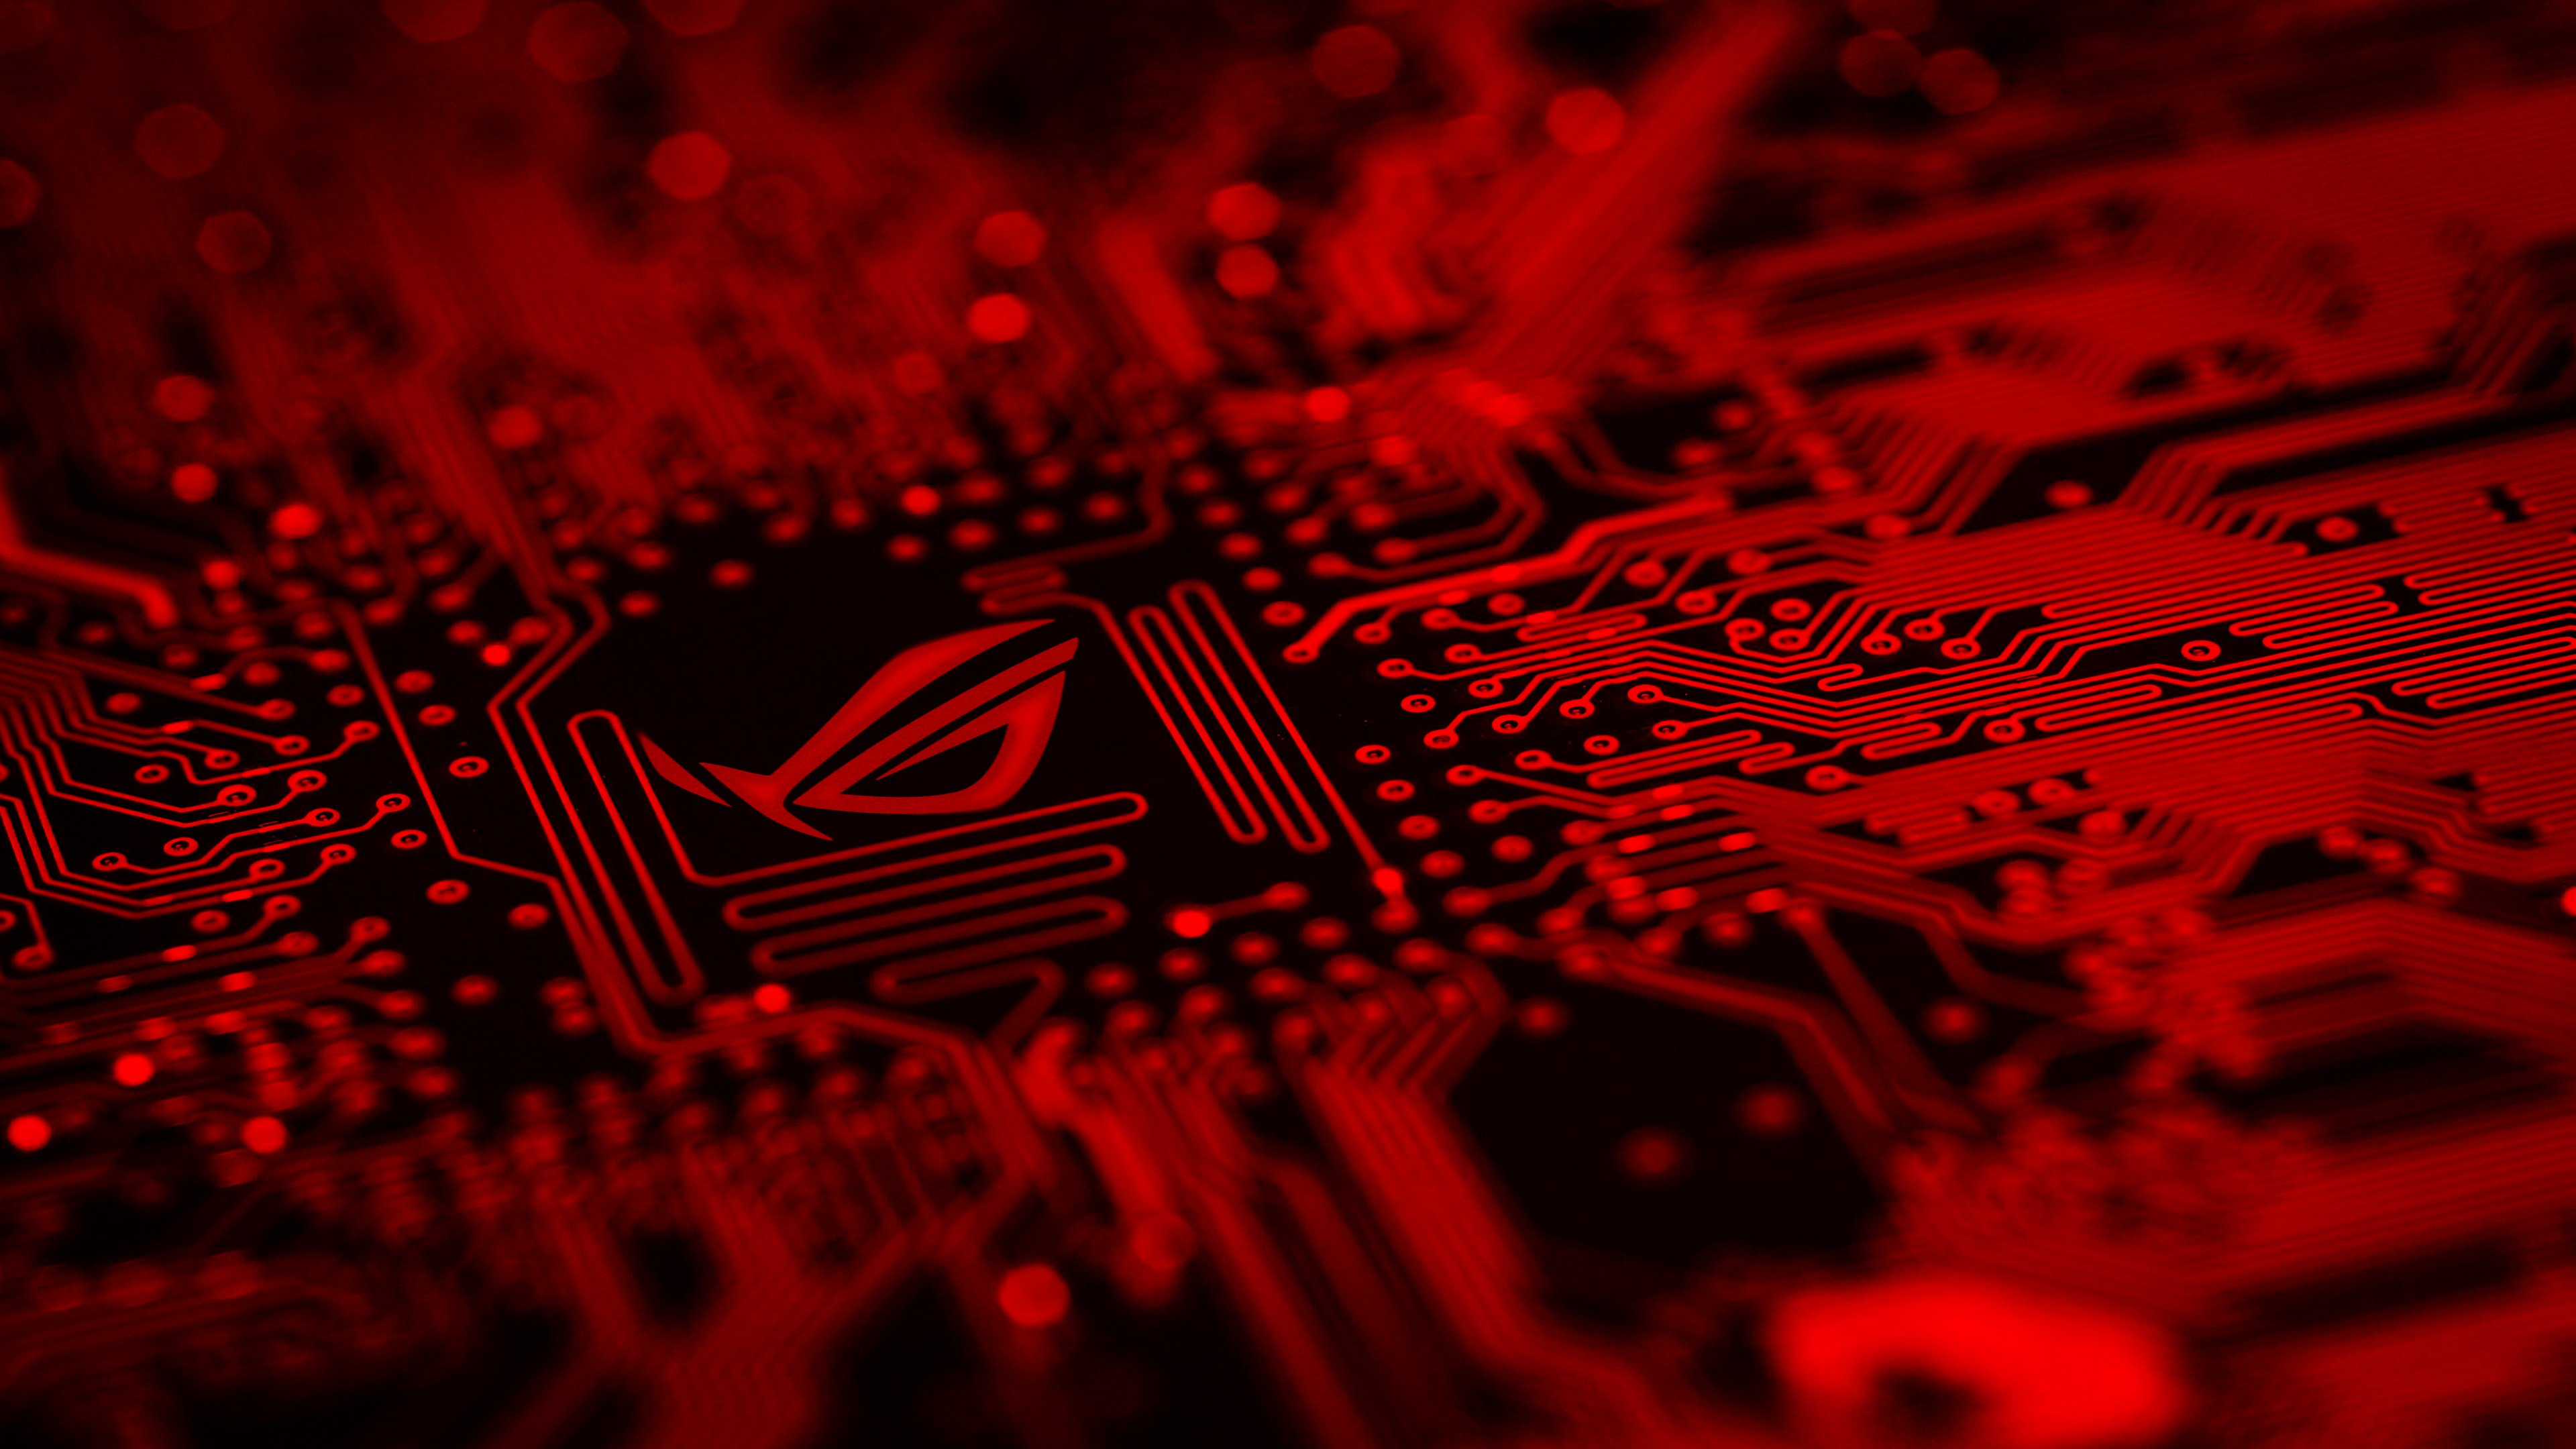 nvidia wallpaper 1080p red - photo #34